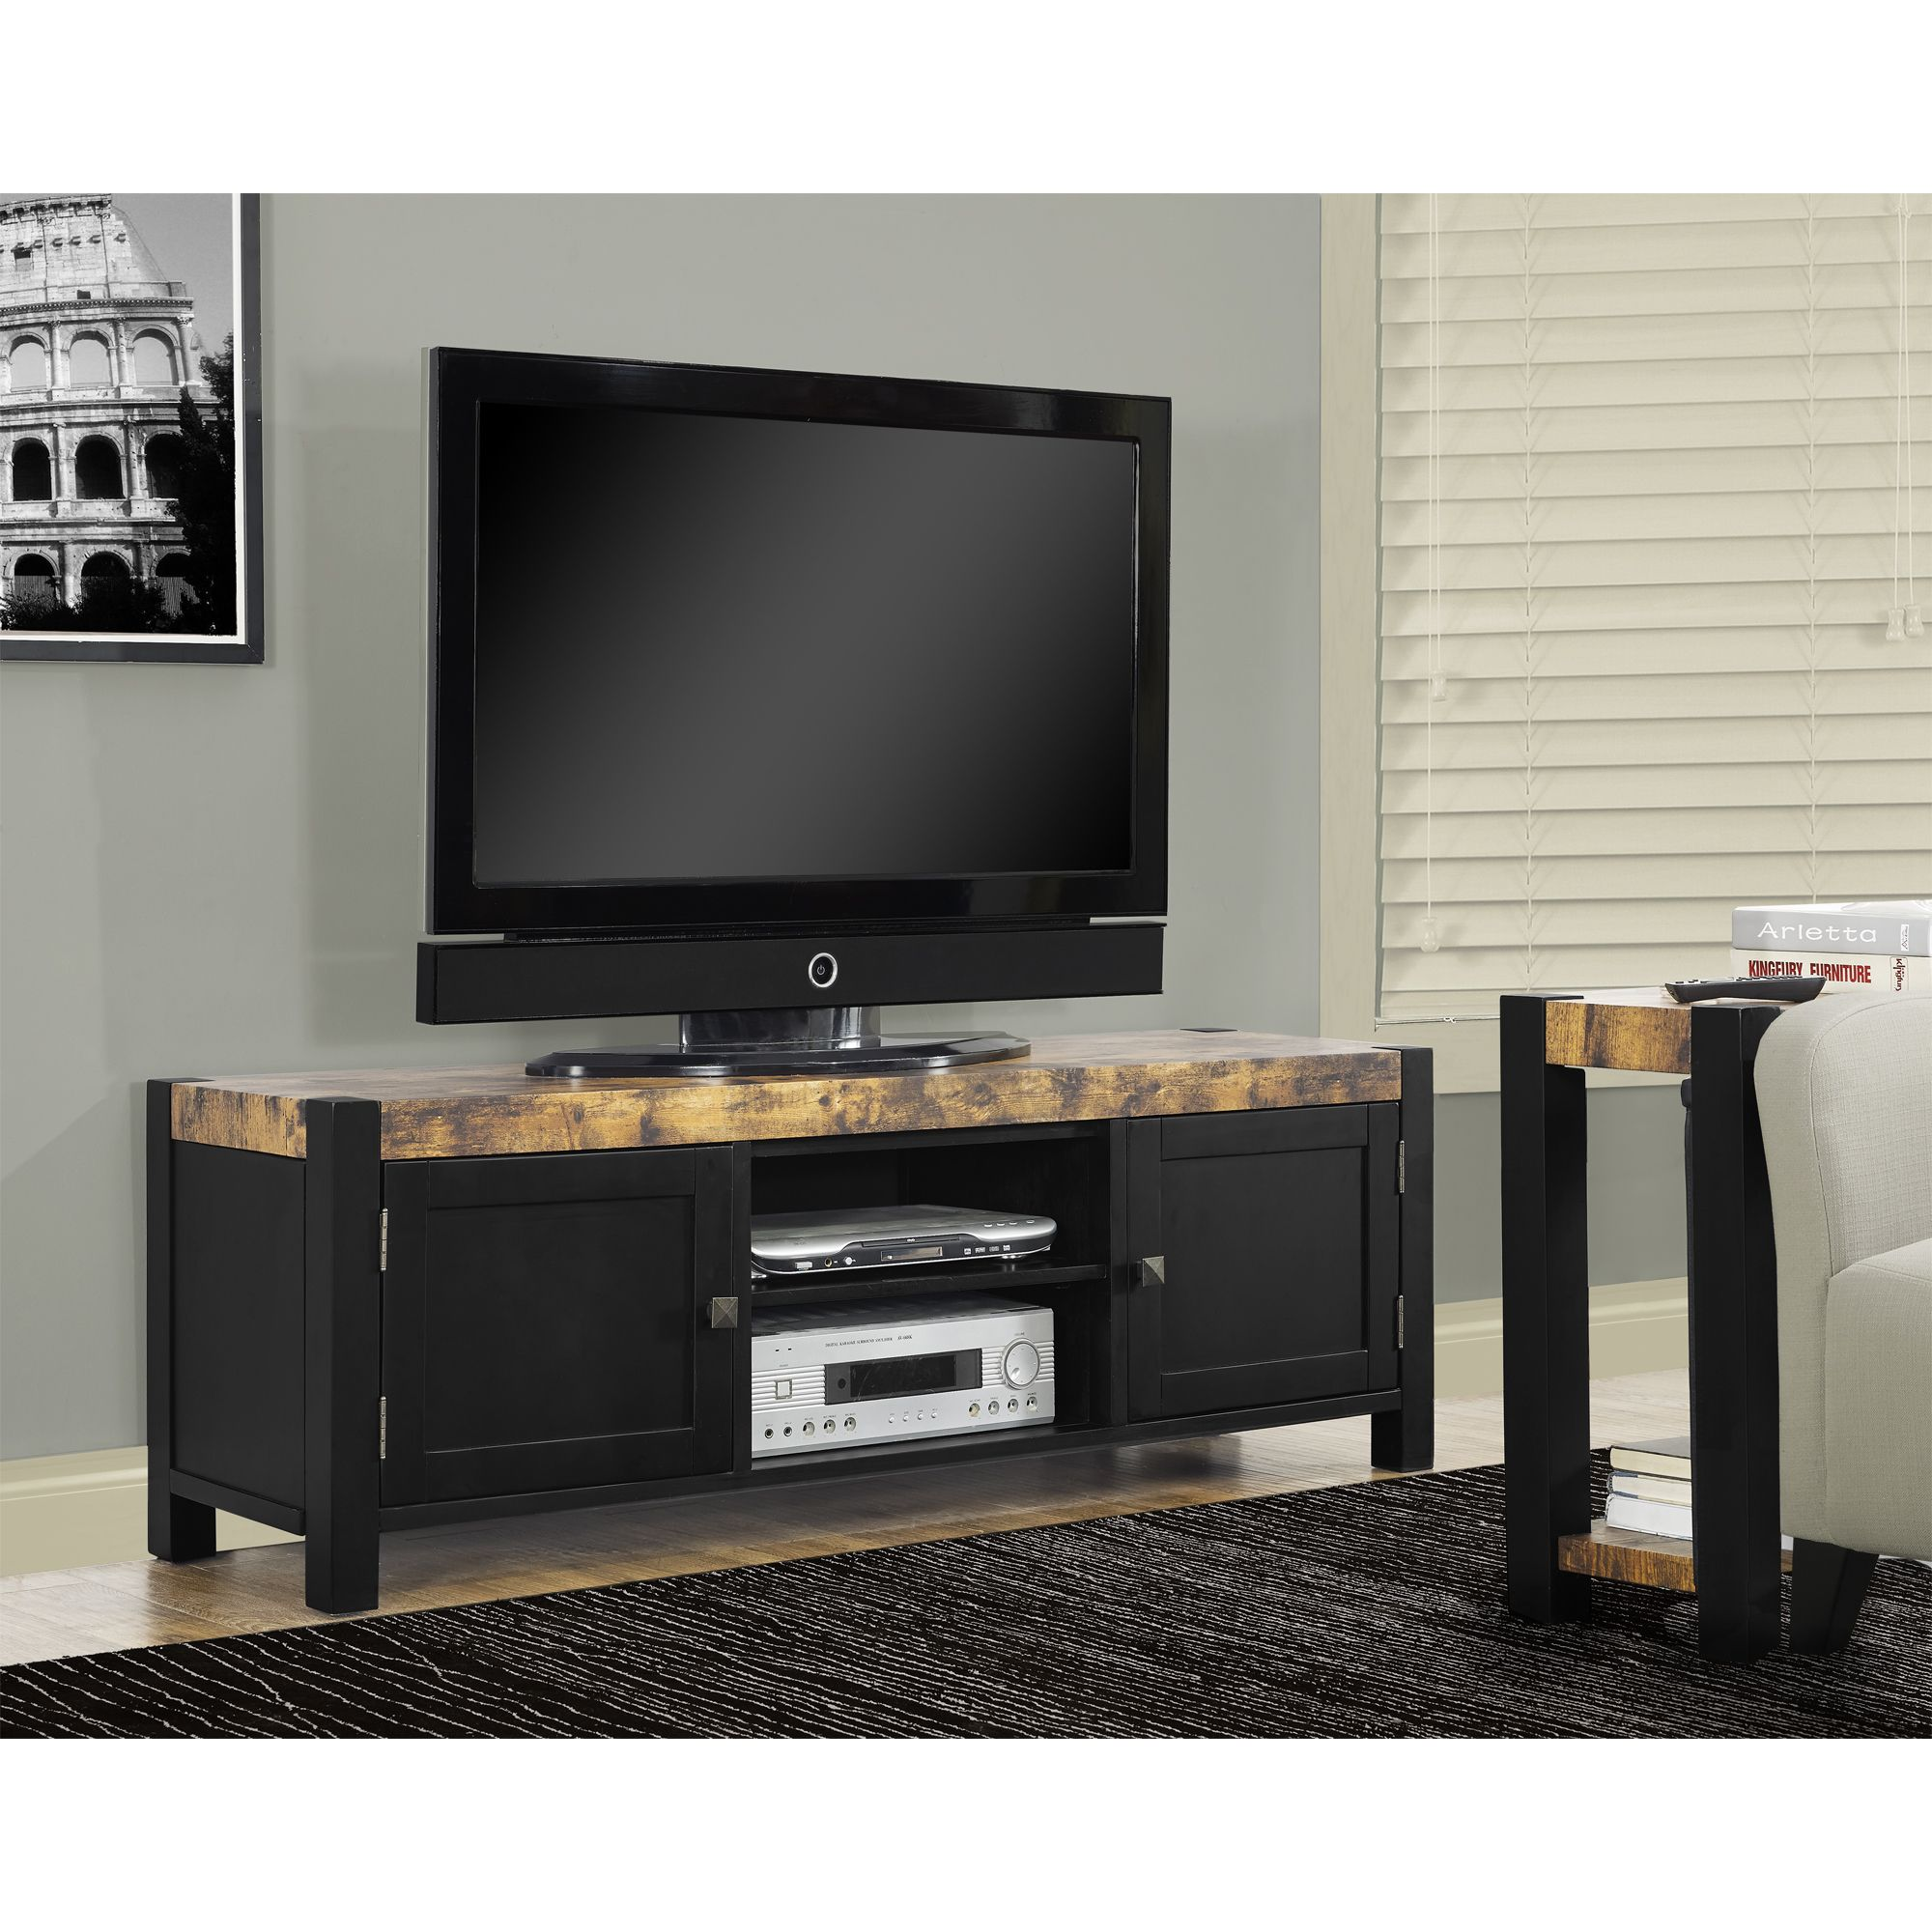 Upgrade Your Living Space With This 60 Inch TV Console Finished In A  Distressed Reclaimed